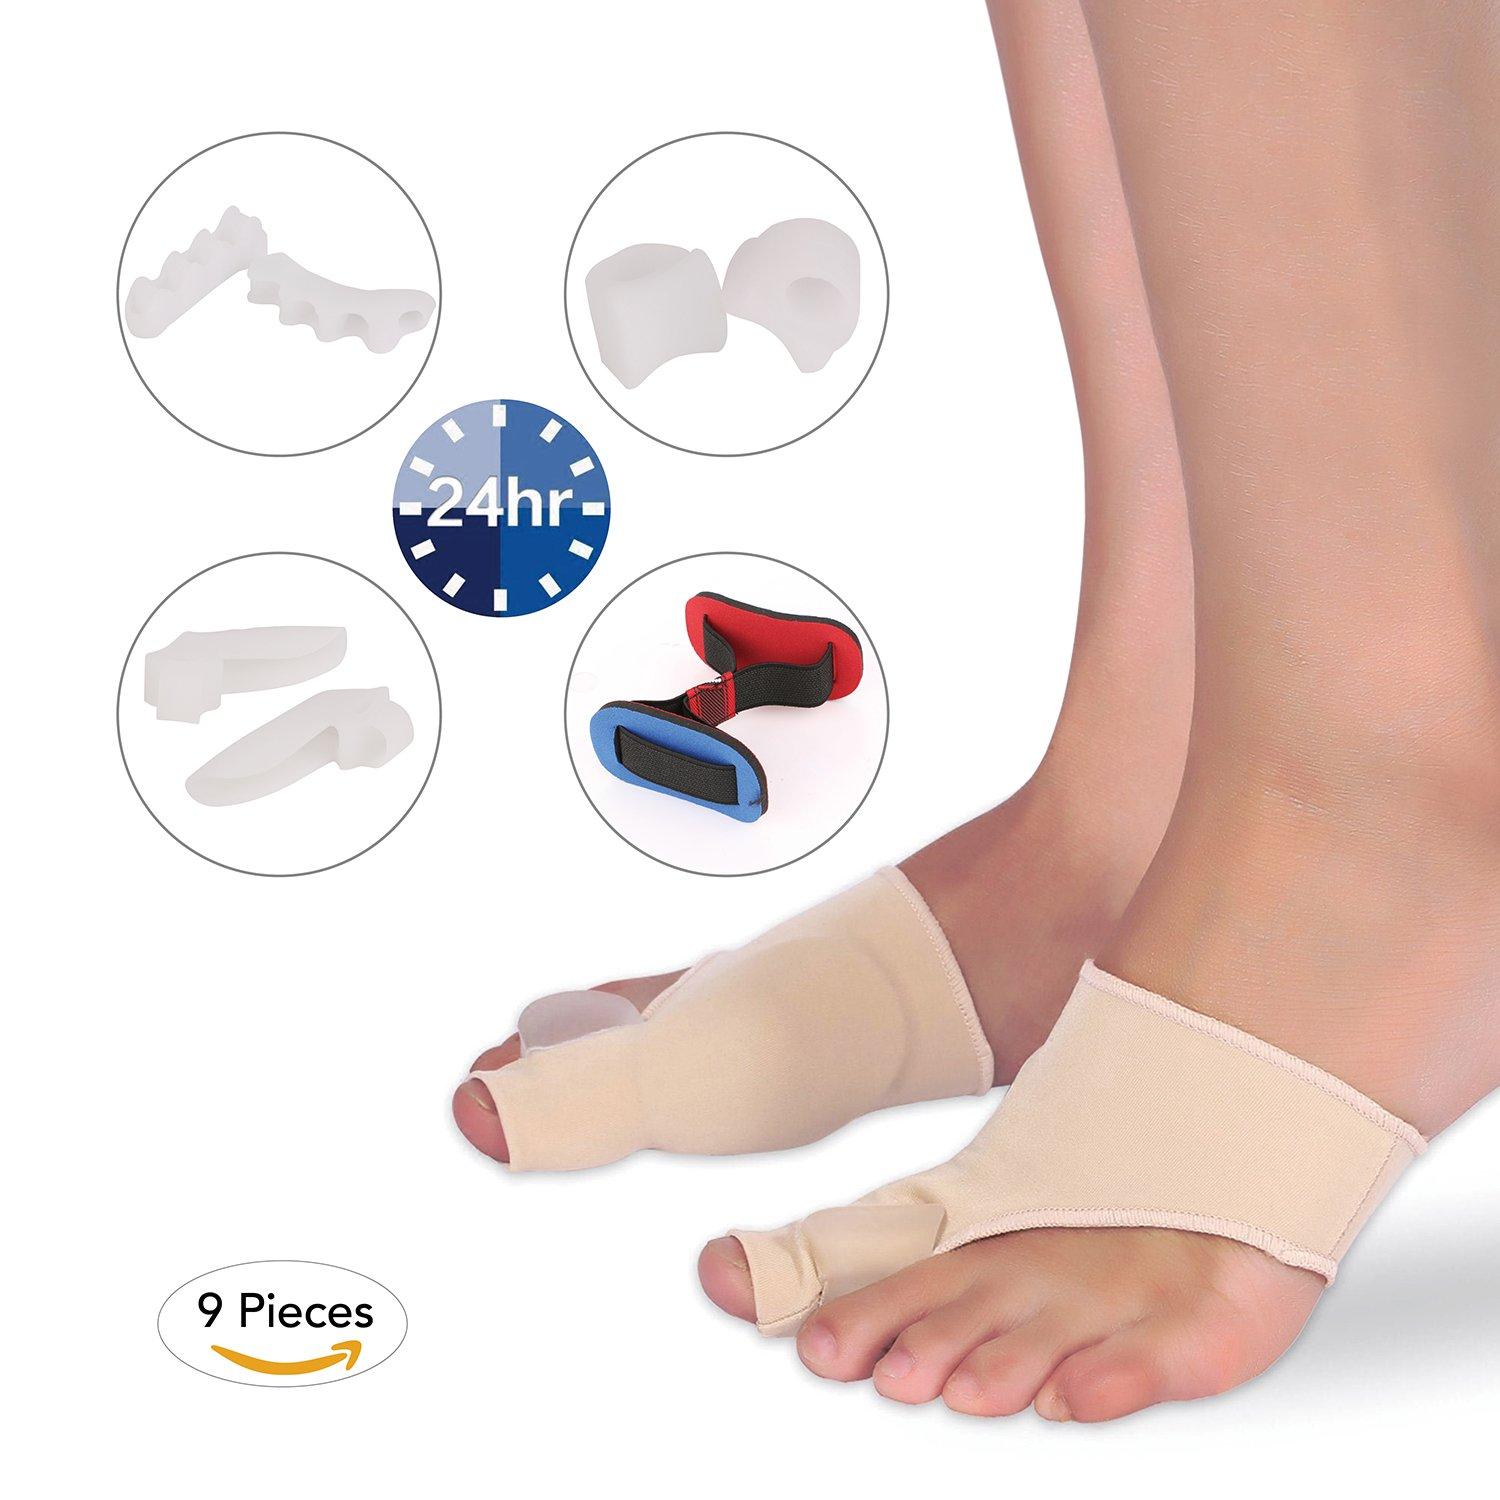 MARNUR Bunion Corrector Pads Kit with Bunion Relief Socks Sleeves and Toe Separators Spacers Straighteners Splint for Bunion Pain, Hallux Valgus and Aid surgery Treatment